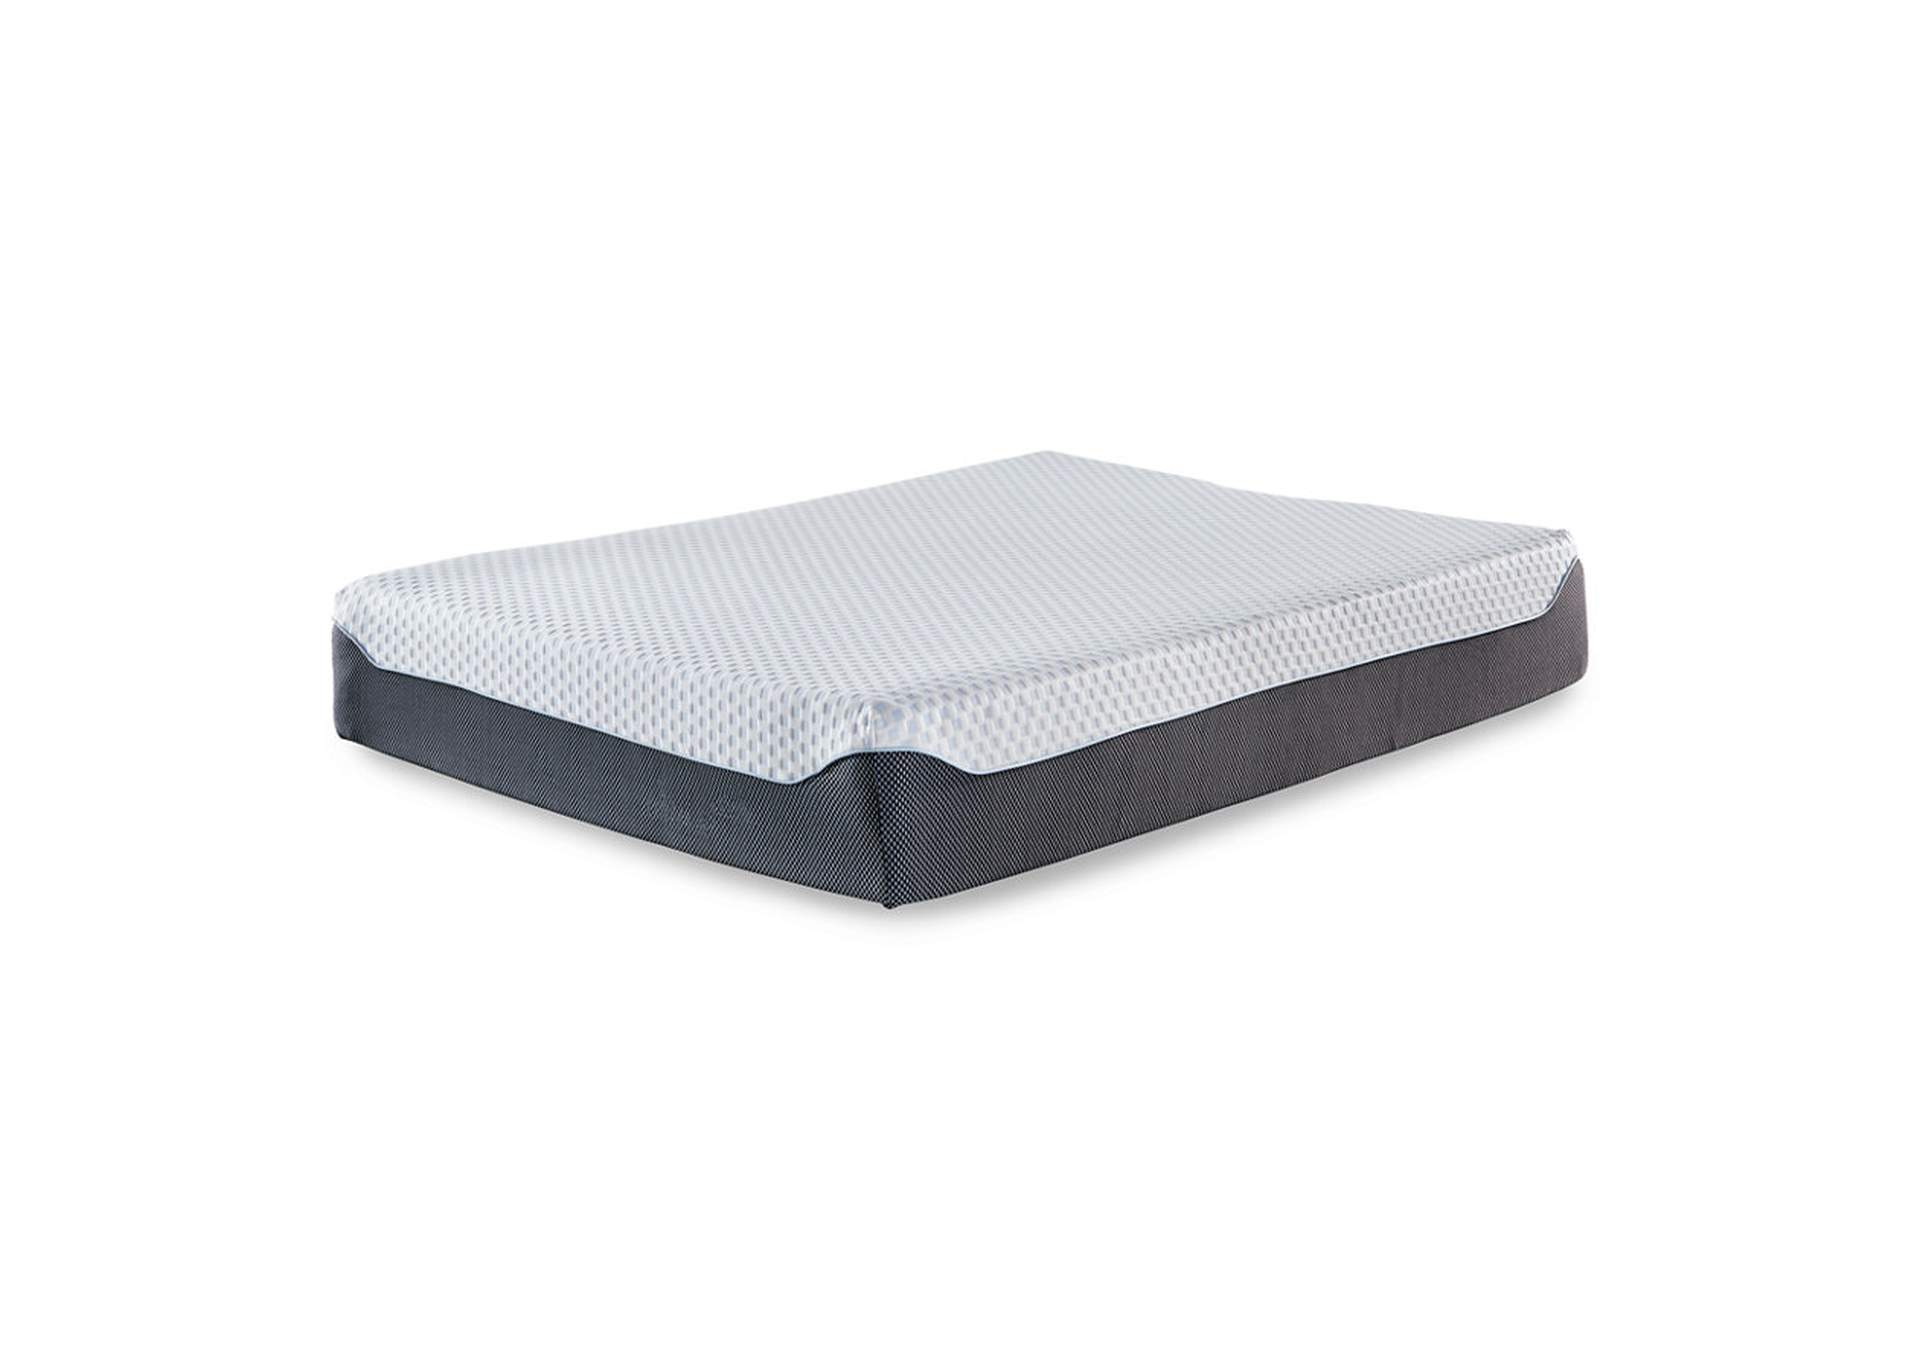 12 Inch Chime Elite Queen Memory Foam Mattress in a box,Sierra Sleep by Ashley